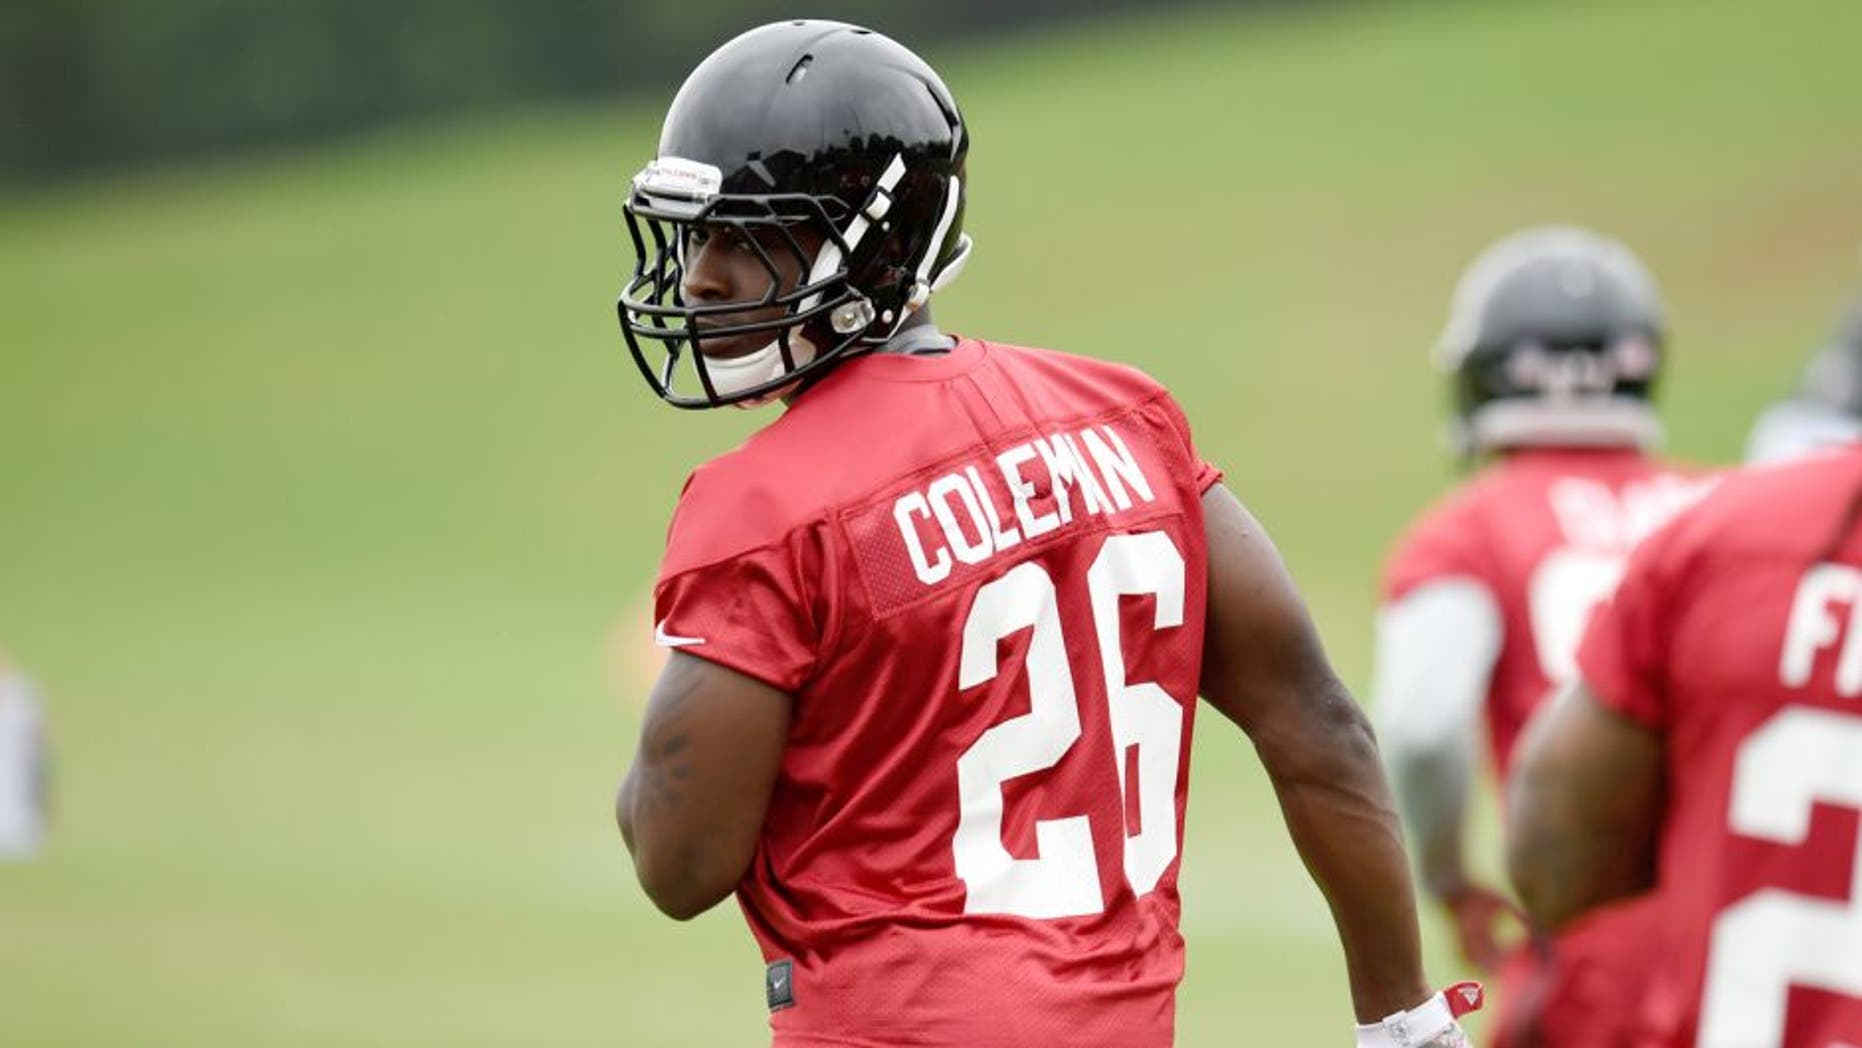 May 26, 2015; Atlanta, GA, USA; Atlanta Falcons running back Tevin Coleman (26) on the field during OTA at Falcons Training Facility. Mandatory Credit: Dale Zanine-USA TODAY Sports